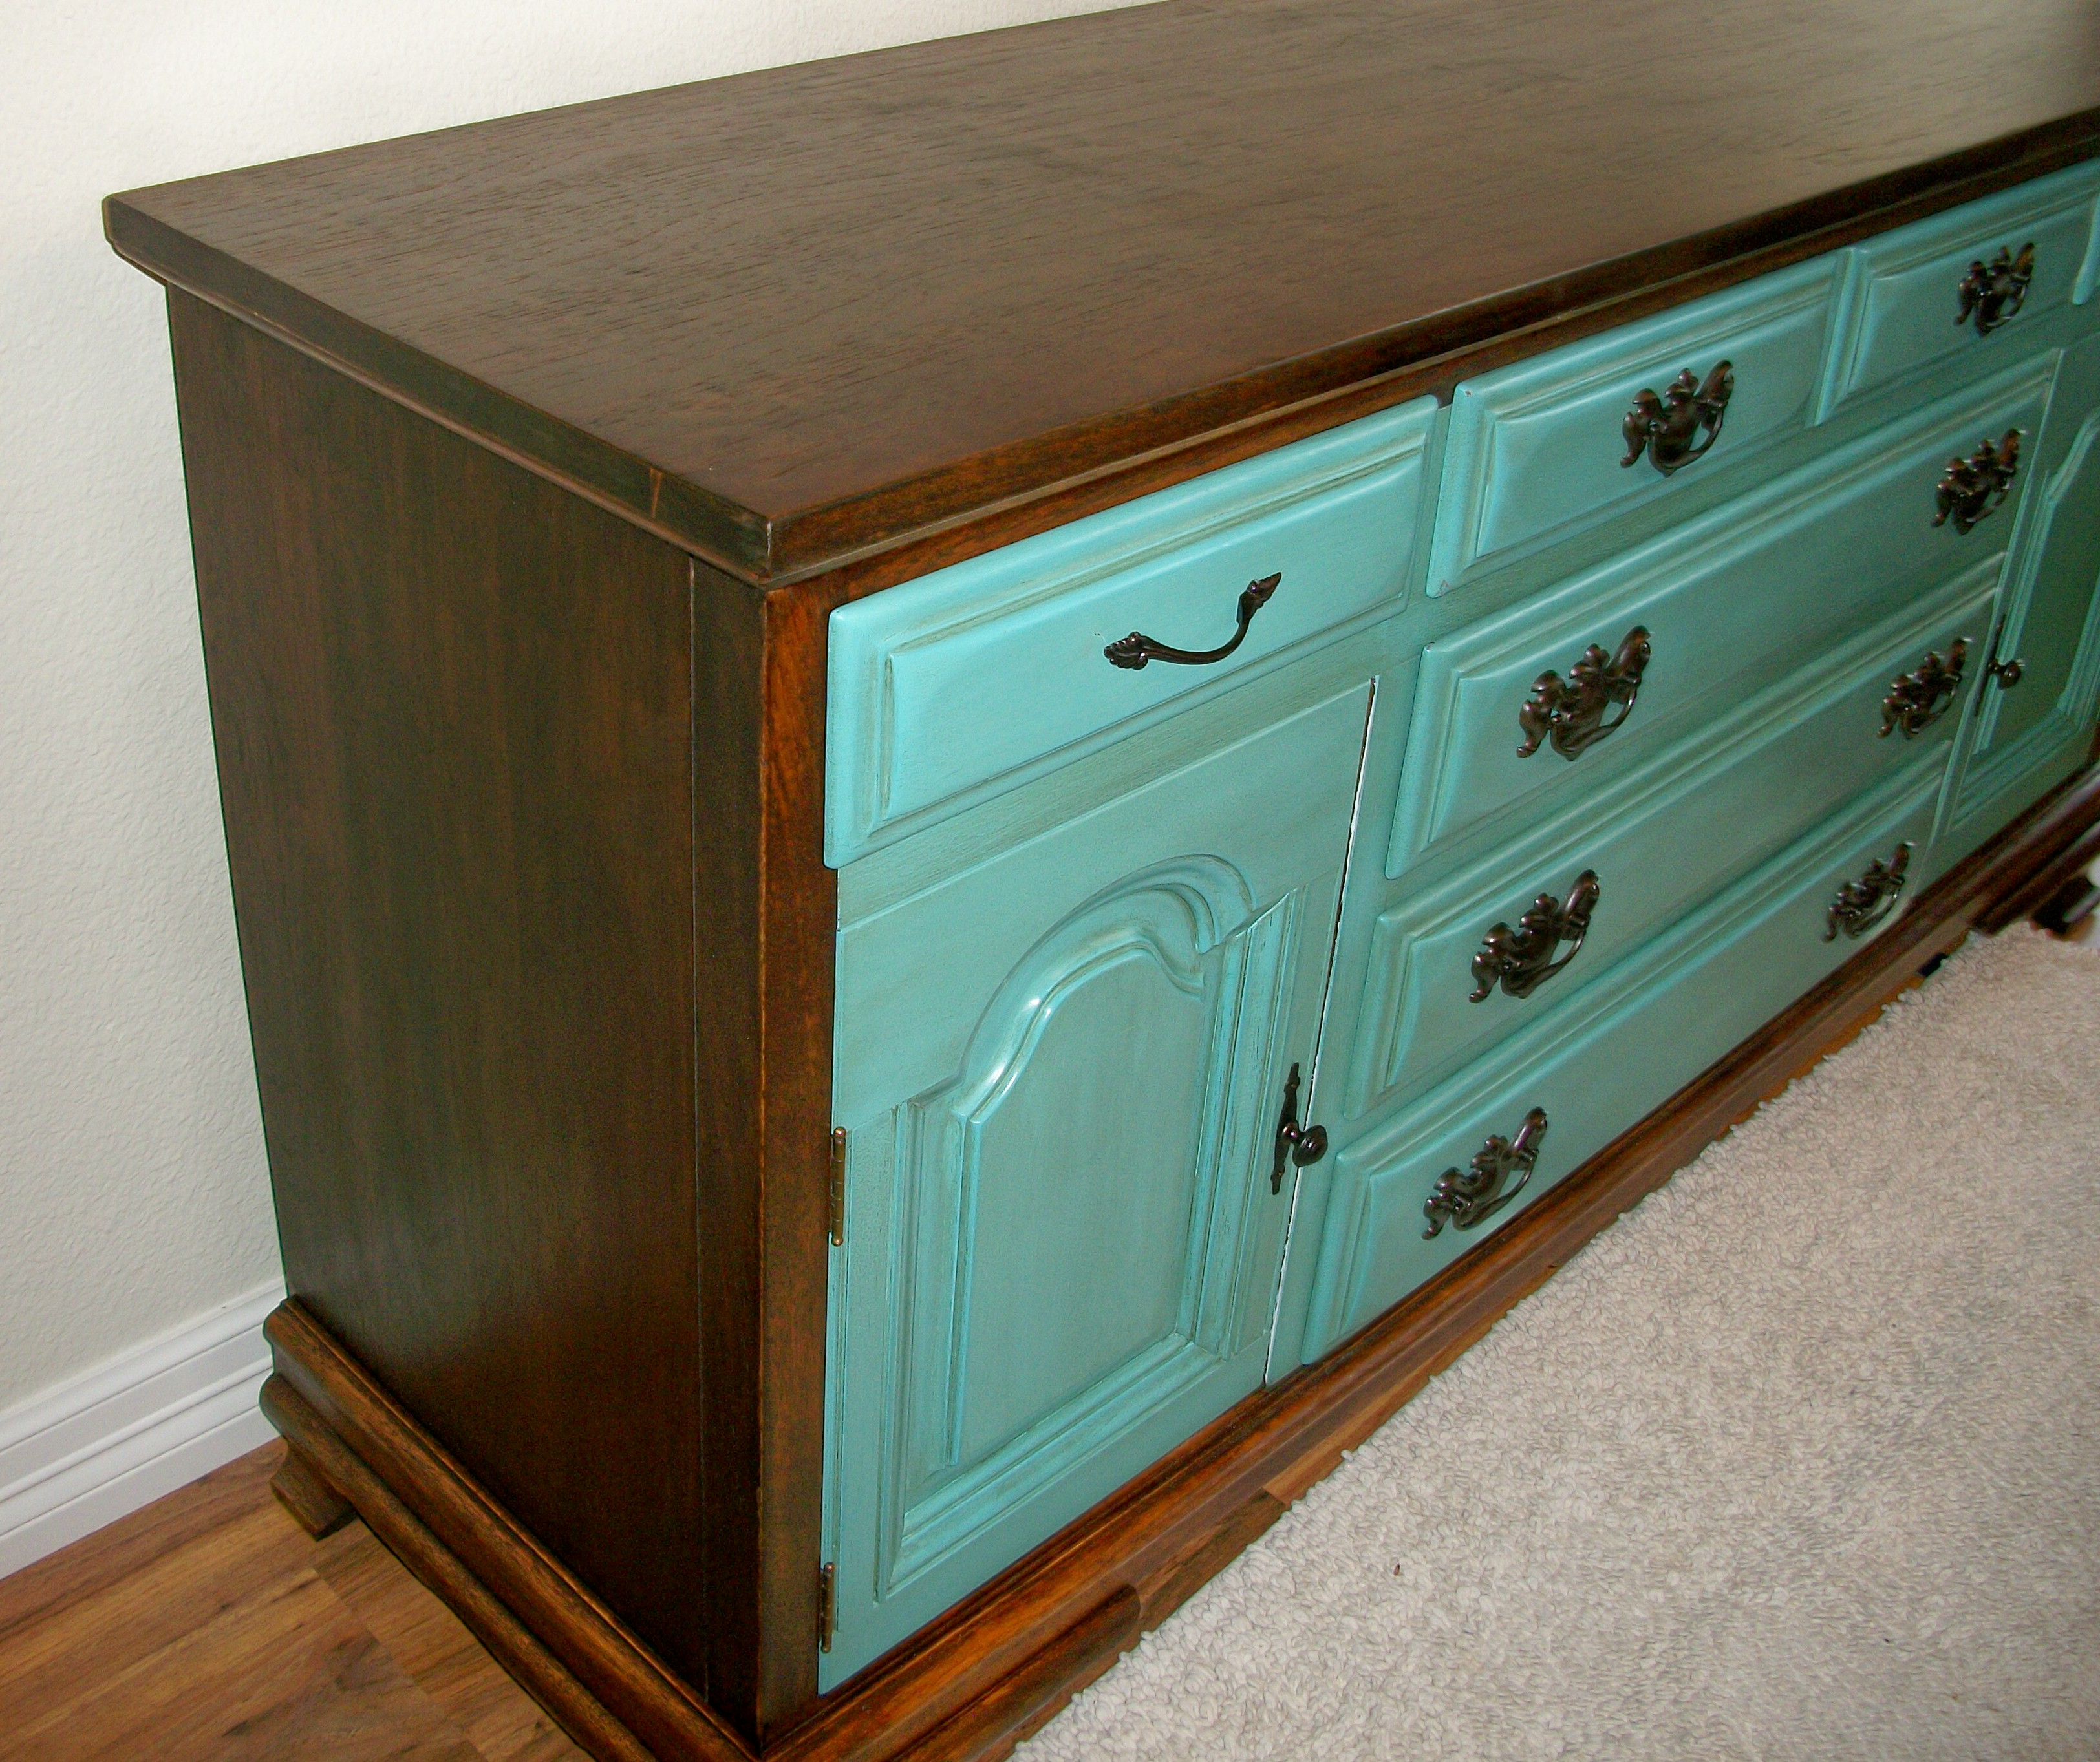 Furniturefriday Hand Painted Furniture